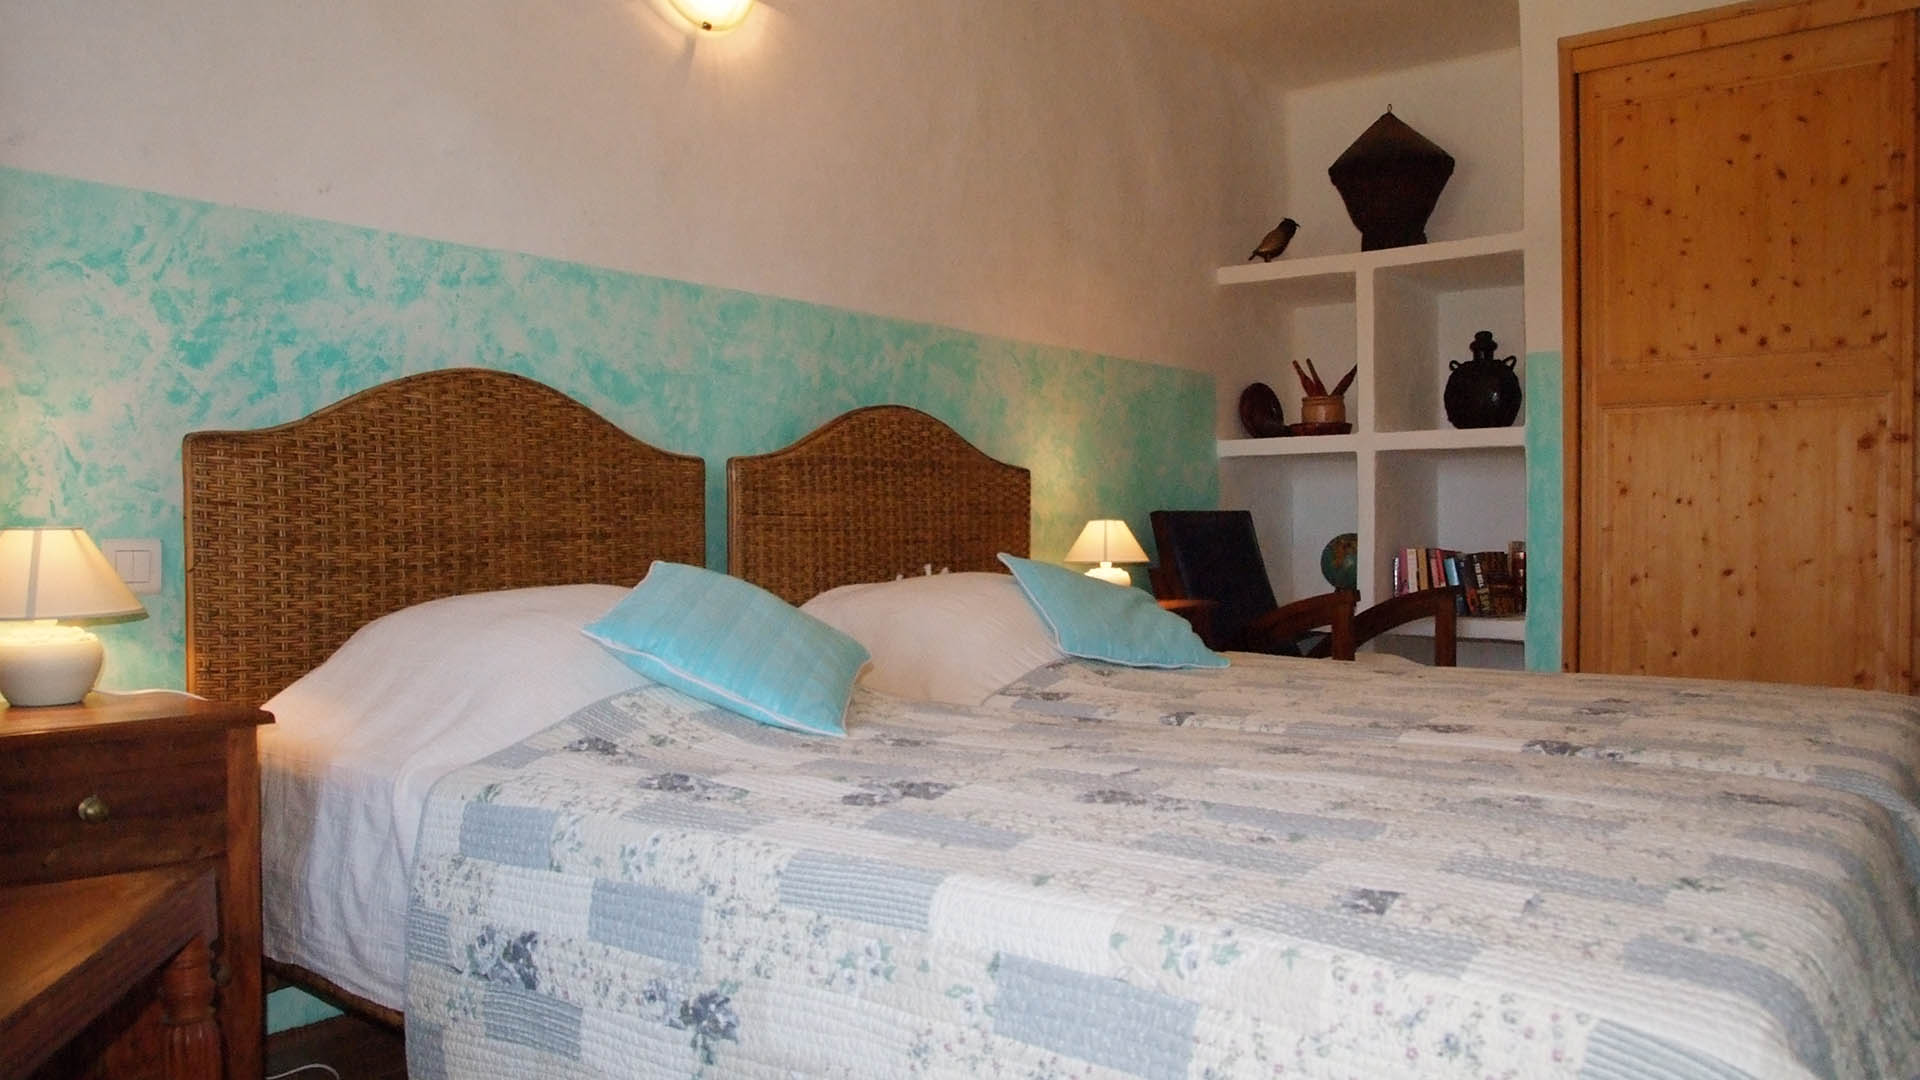 Chambre Deco Bleu Cottage Bed And Breakfast In Saint Rémy De Provence France Deco